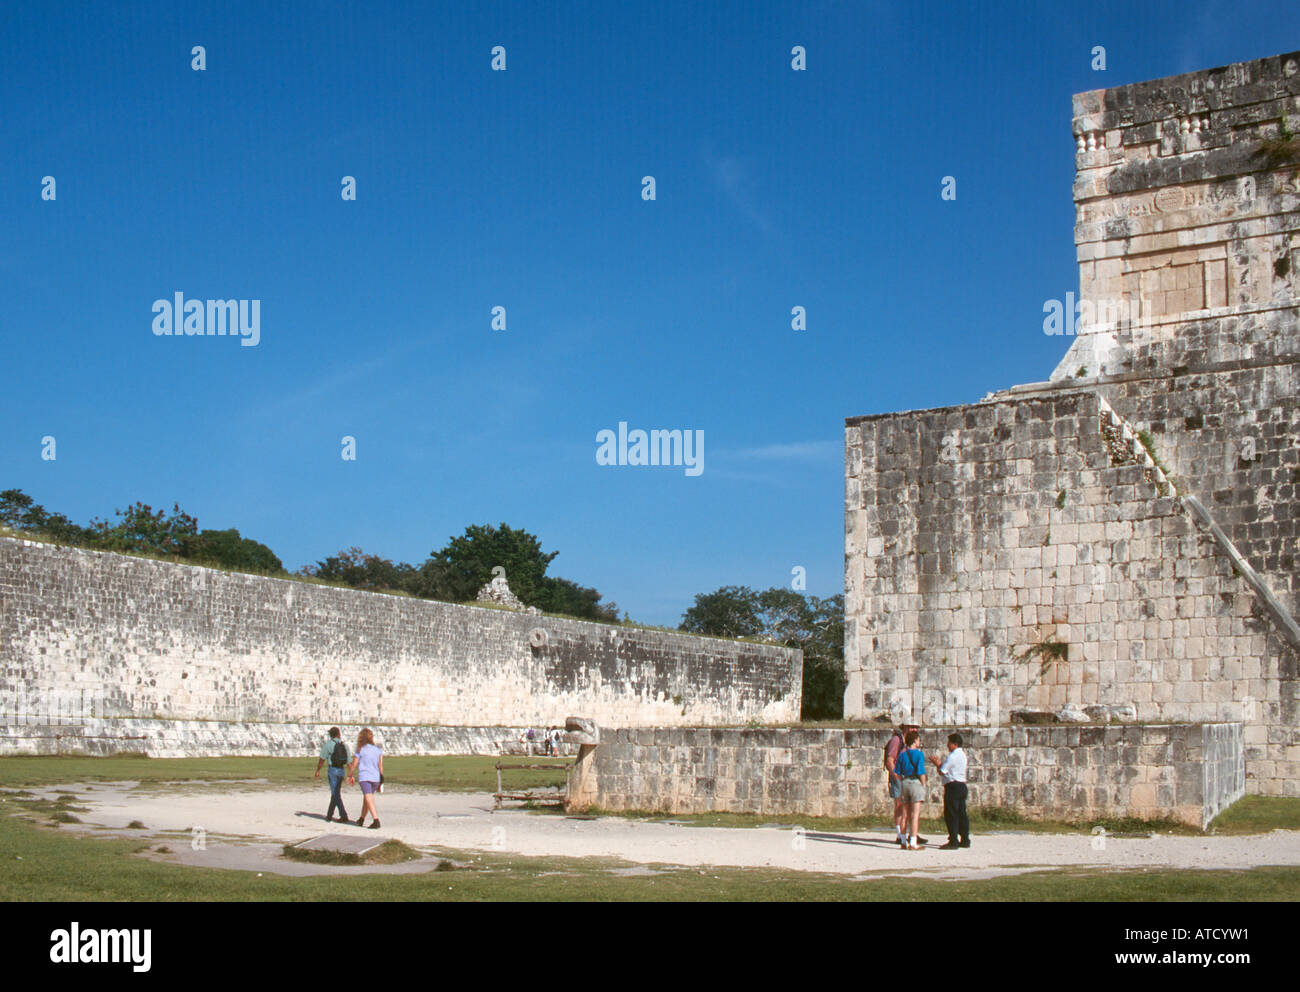 The Great Ball Court in the Mayan Ruins of Chichen Itza, Yucatan Peninsula, Mexico - Stock Image